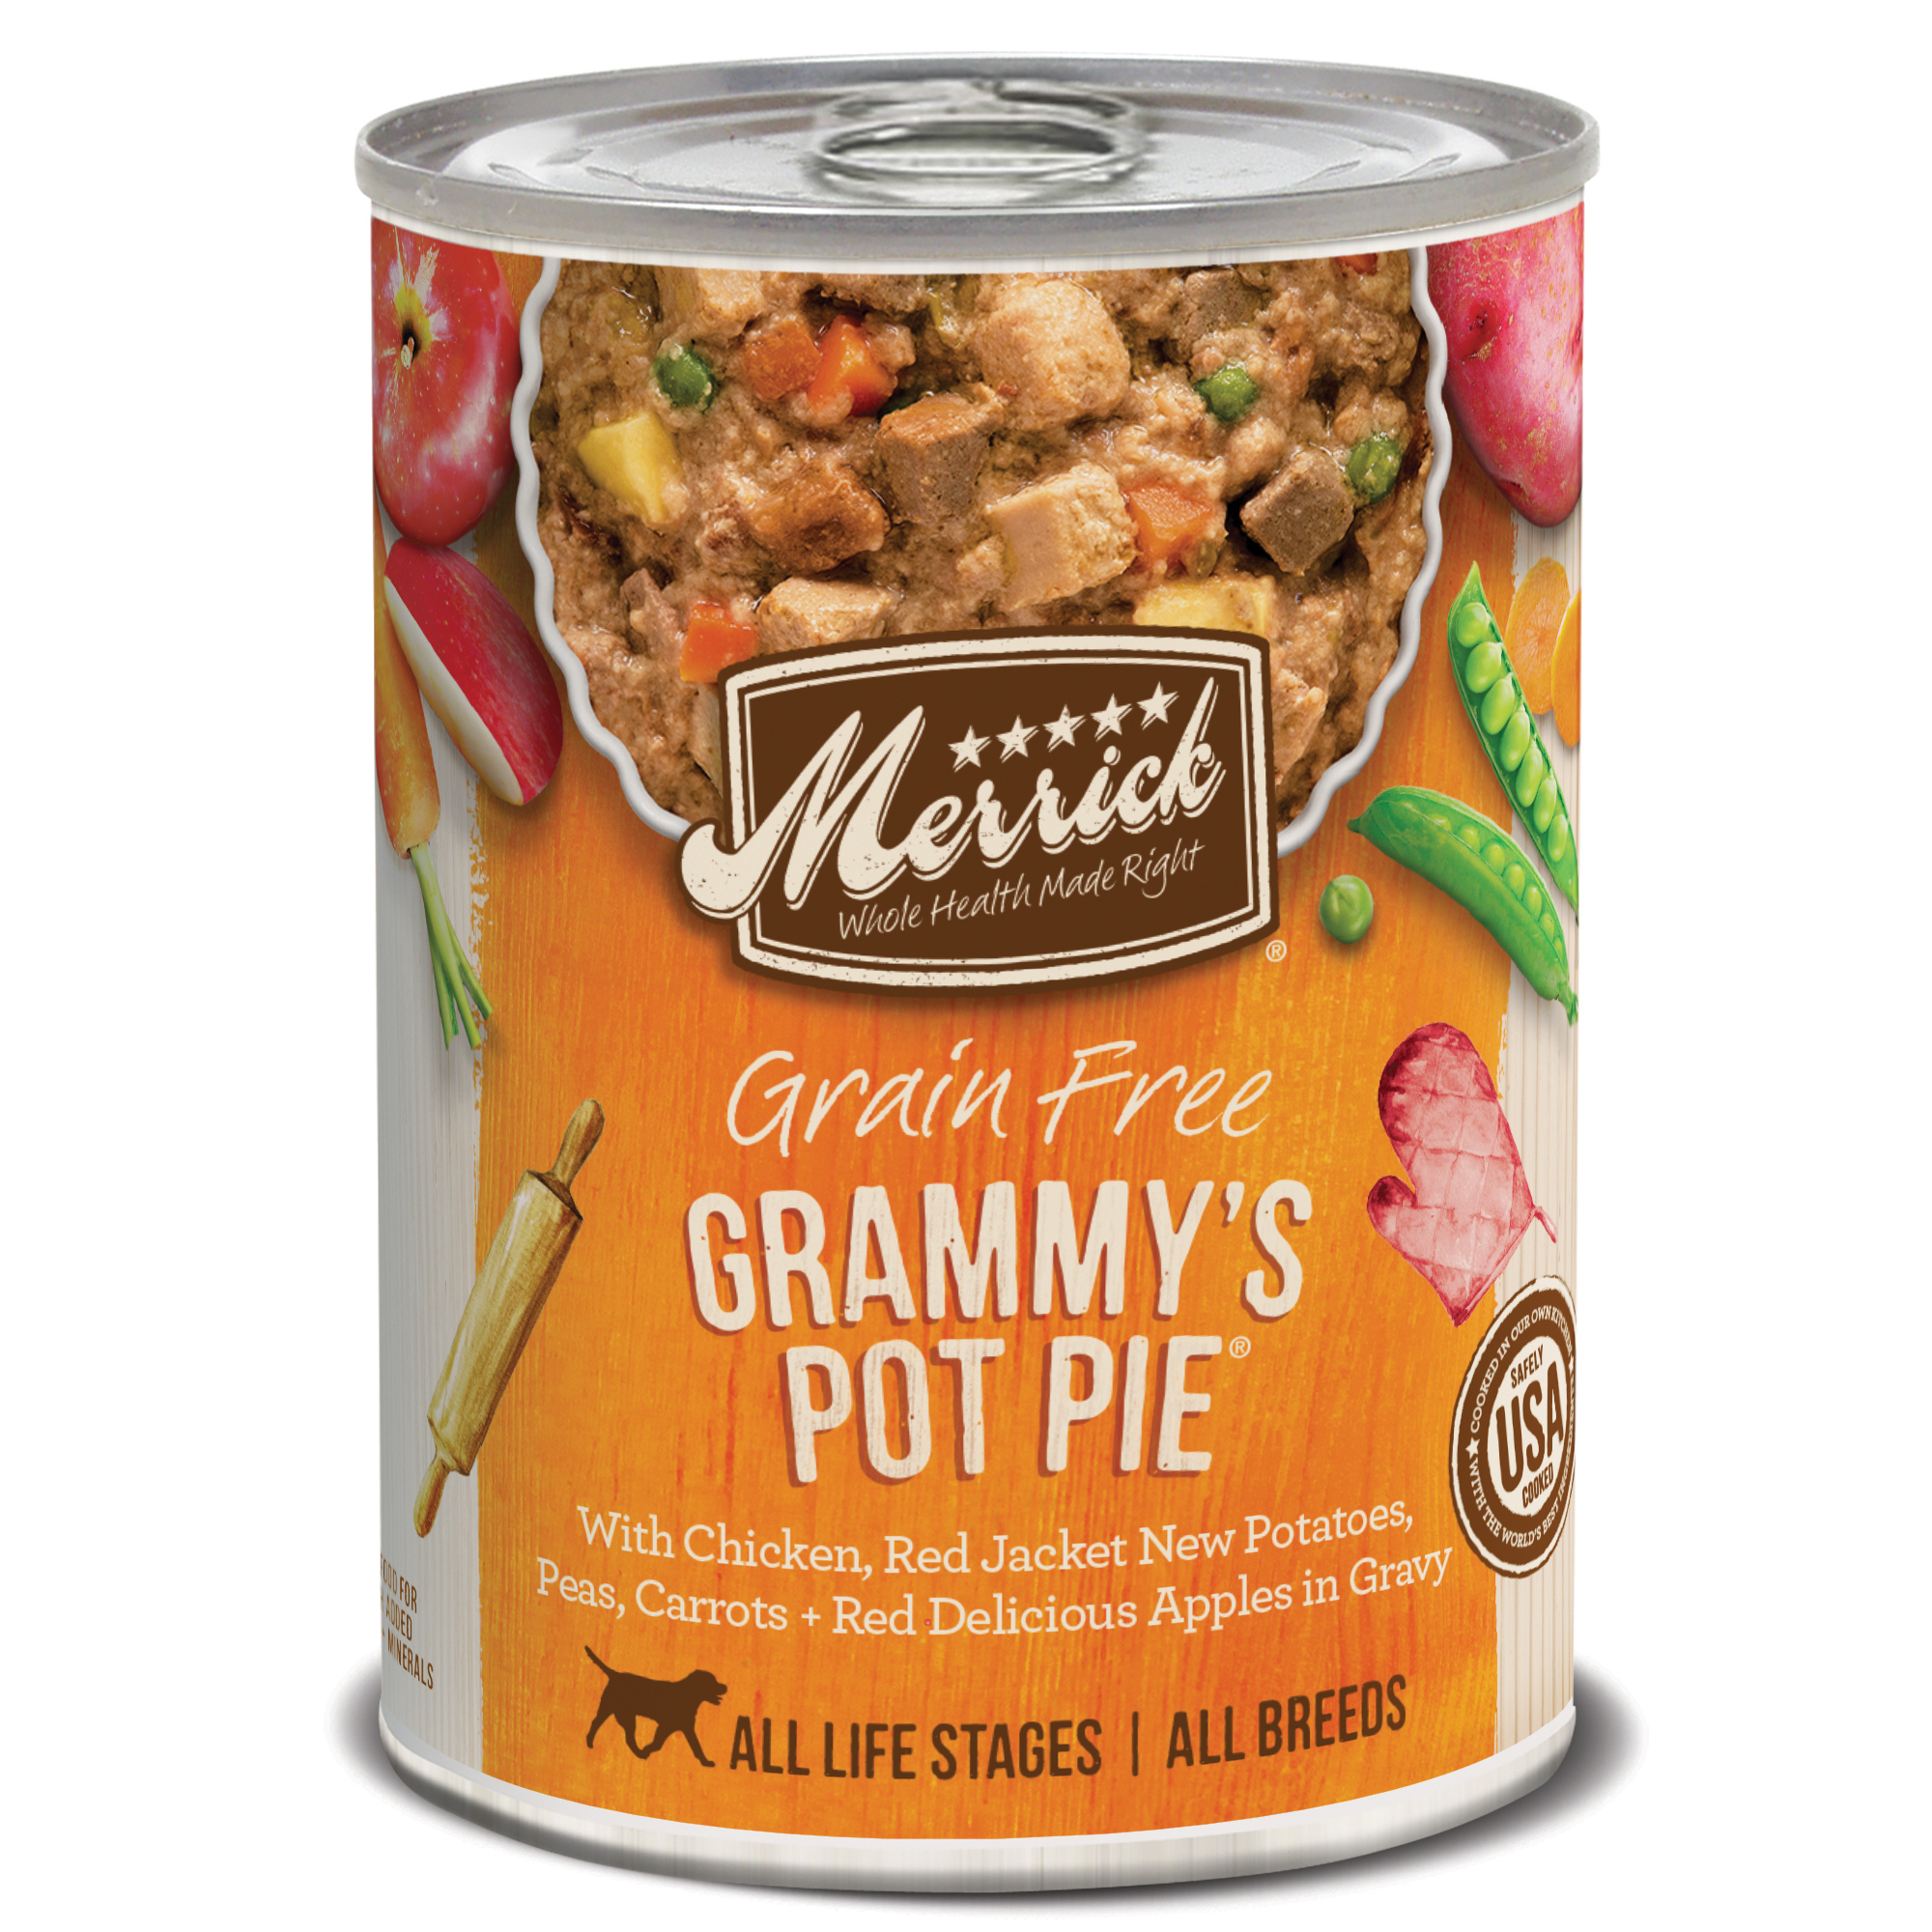 Merrick Grain-Free Grammy's Pot Pie Recipe Canned Dog Food, 12.7-oz